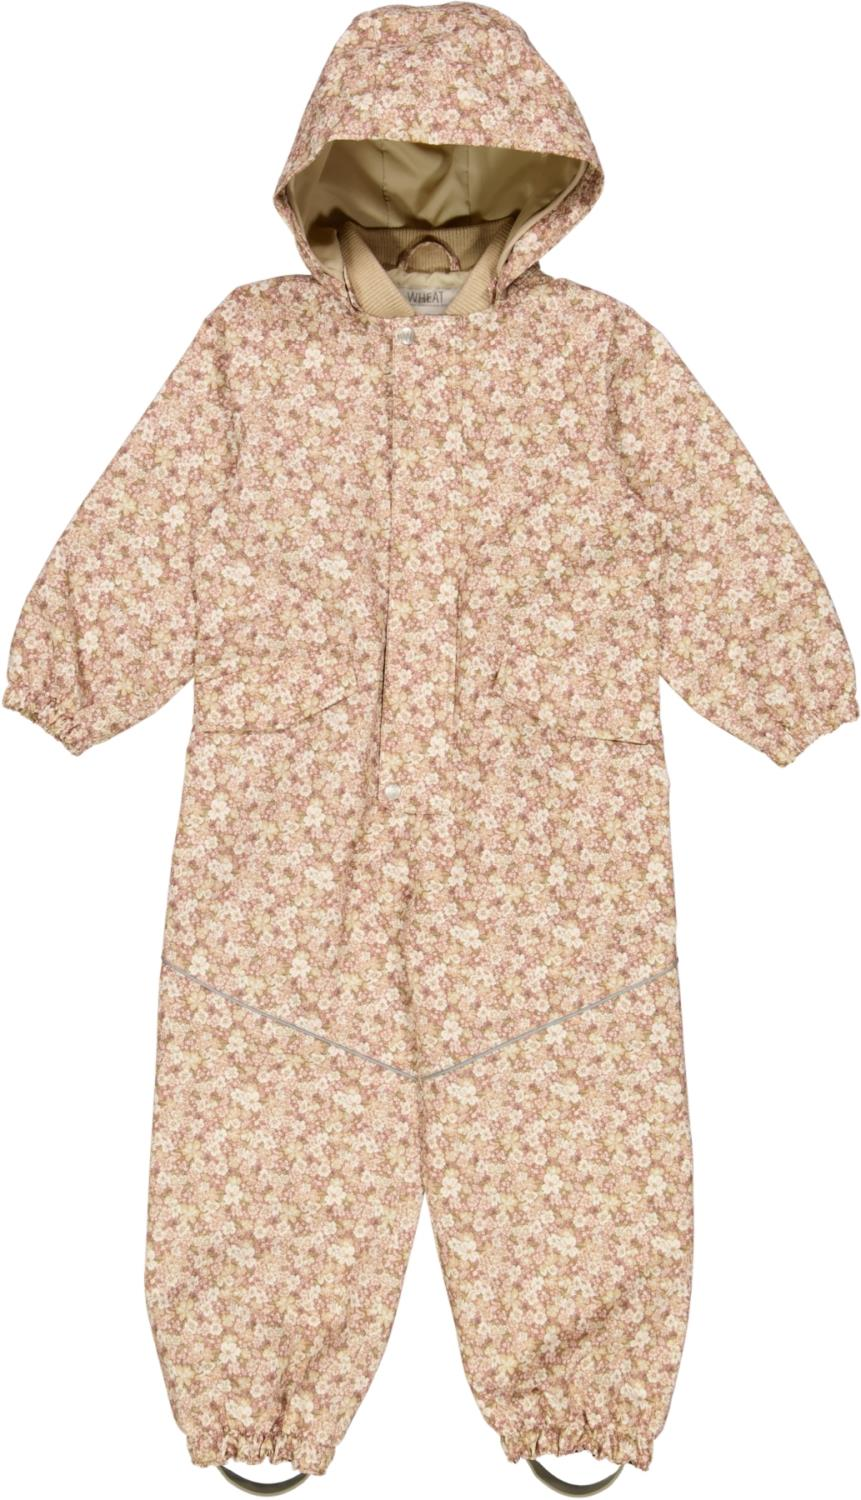 Wheat Outerwear - Suit Masi Tech F2 2475 rose flowers